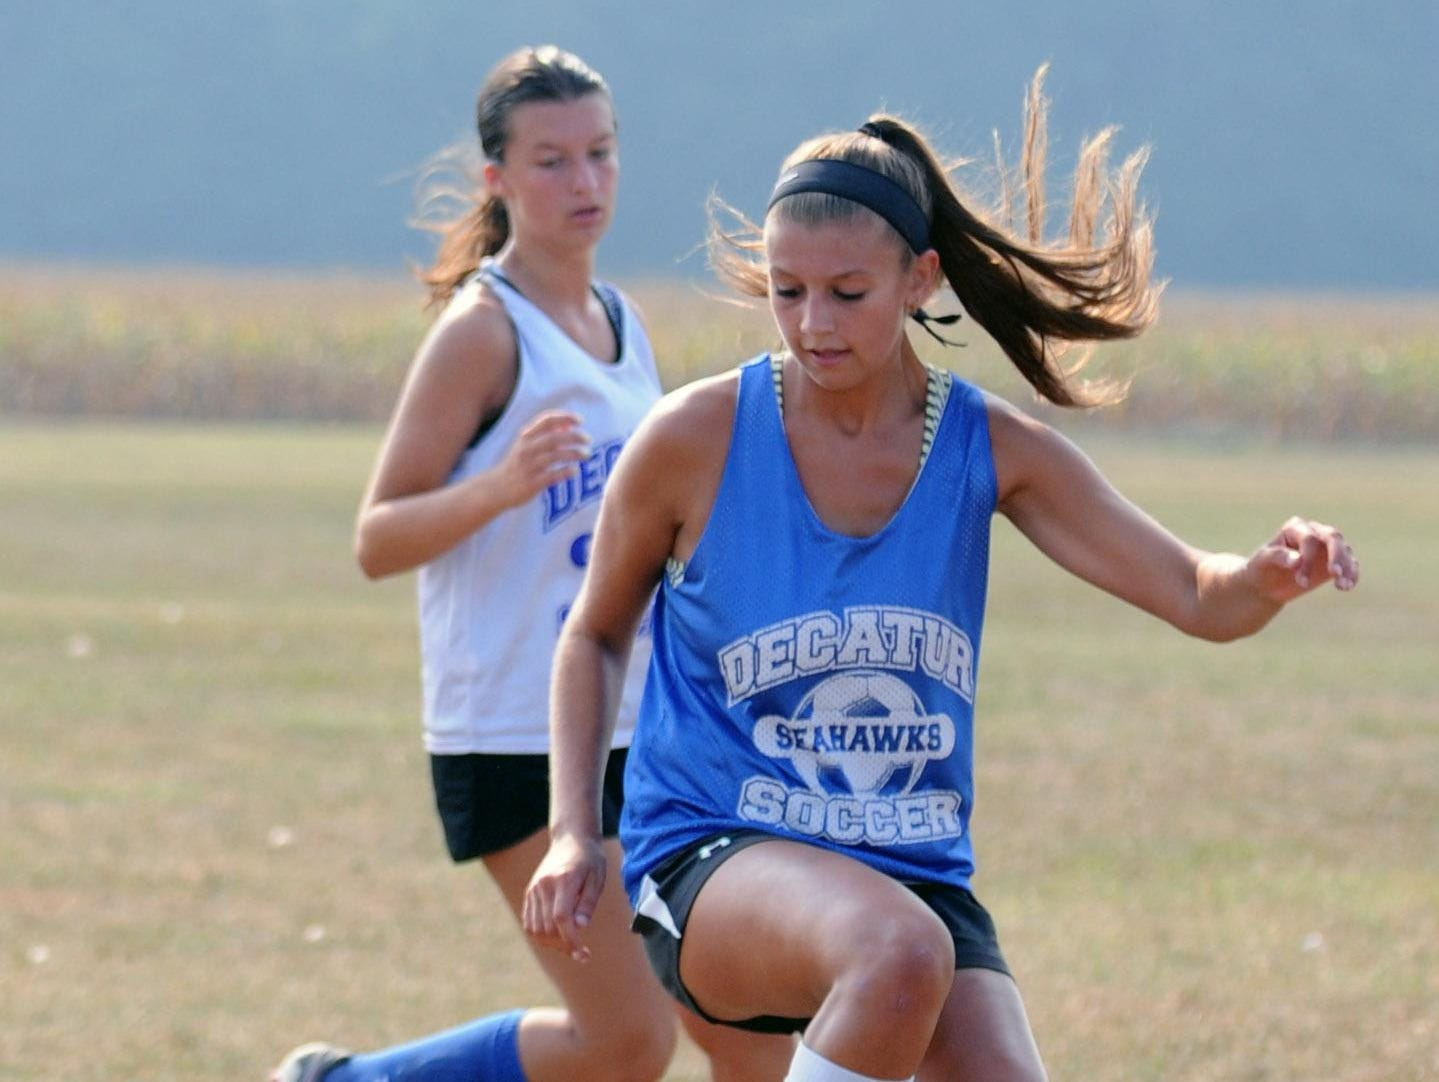 Stephen Decatur's Peyton Townsend switches direction with the ball during practice.